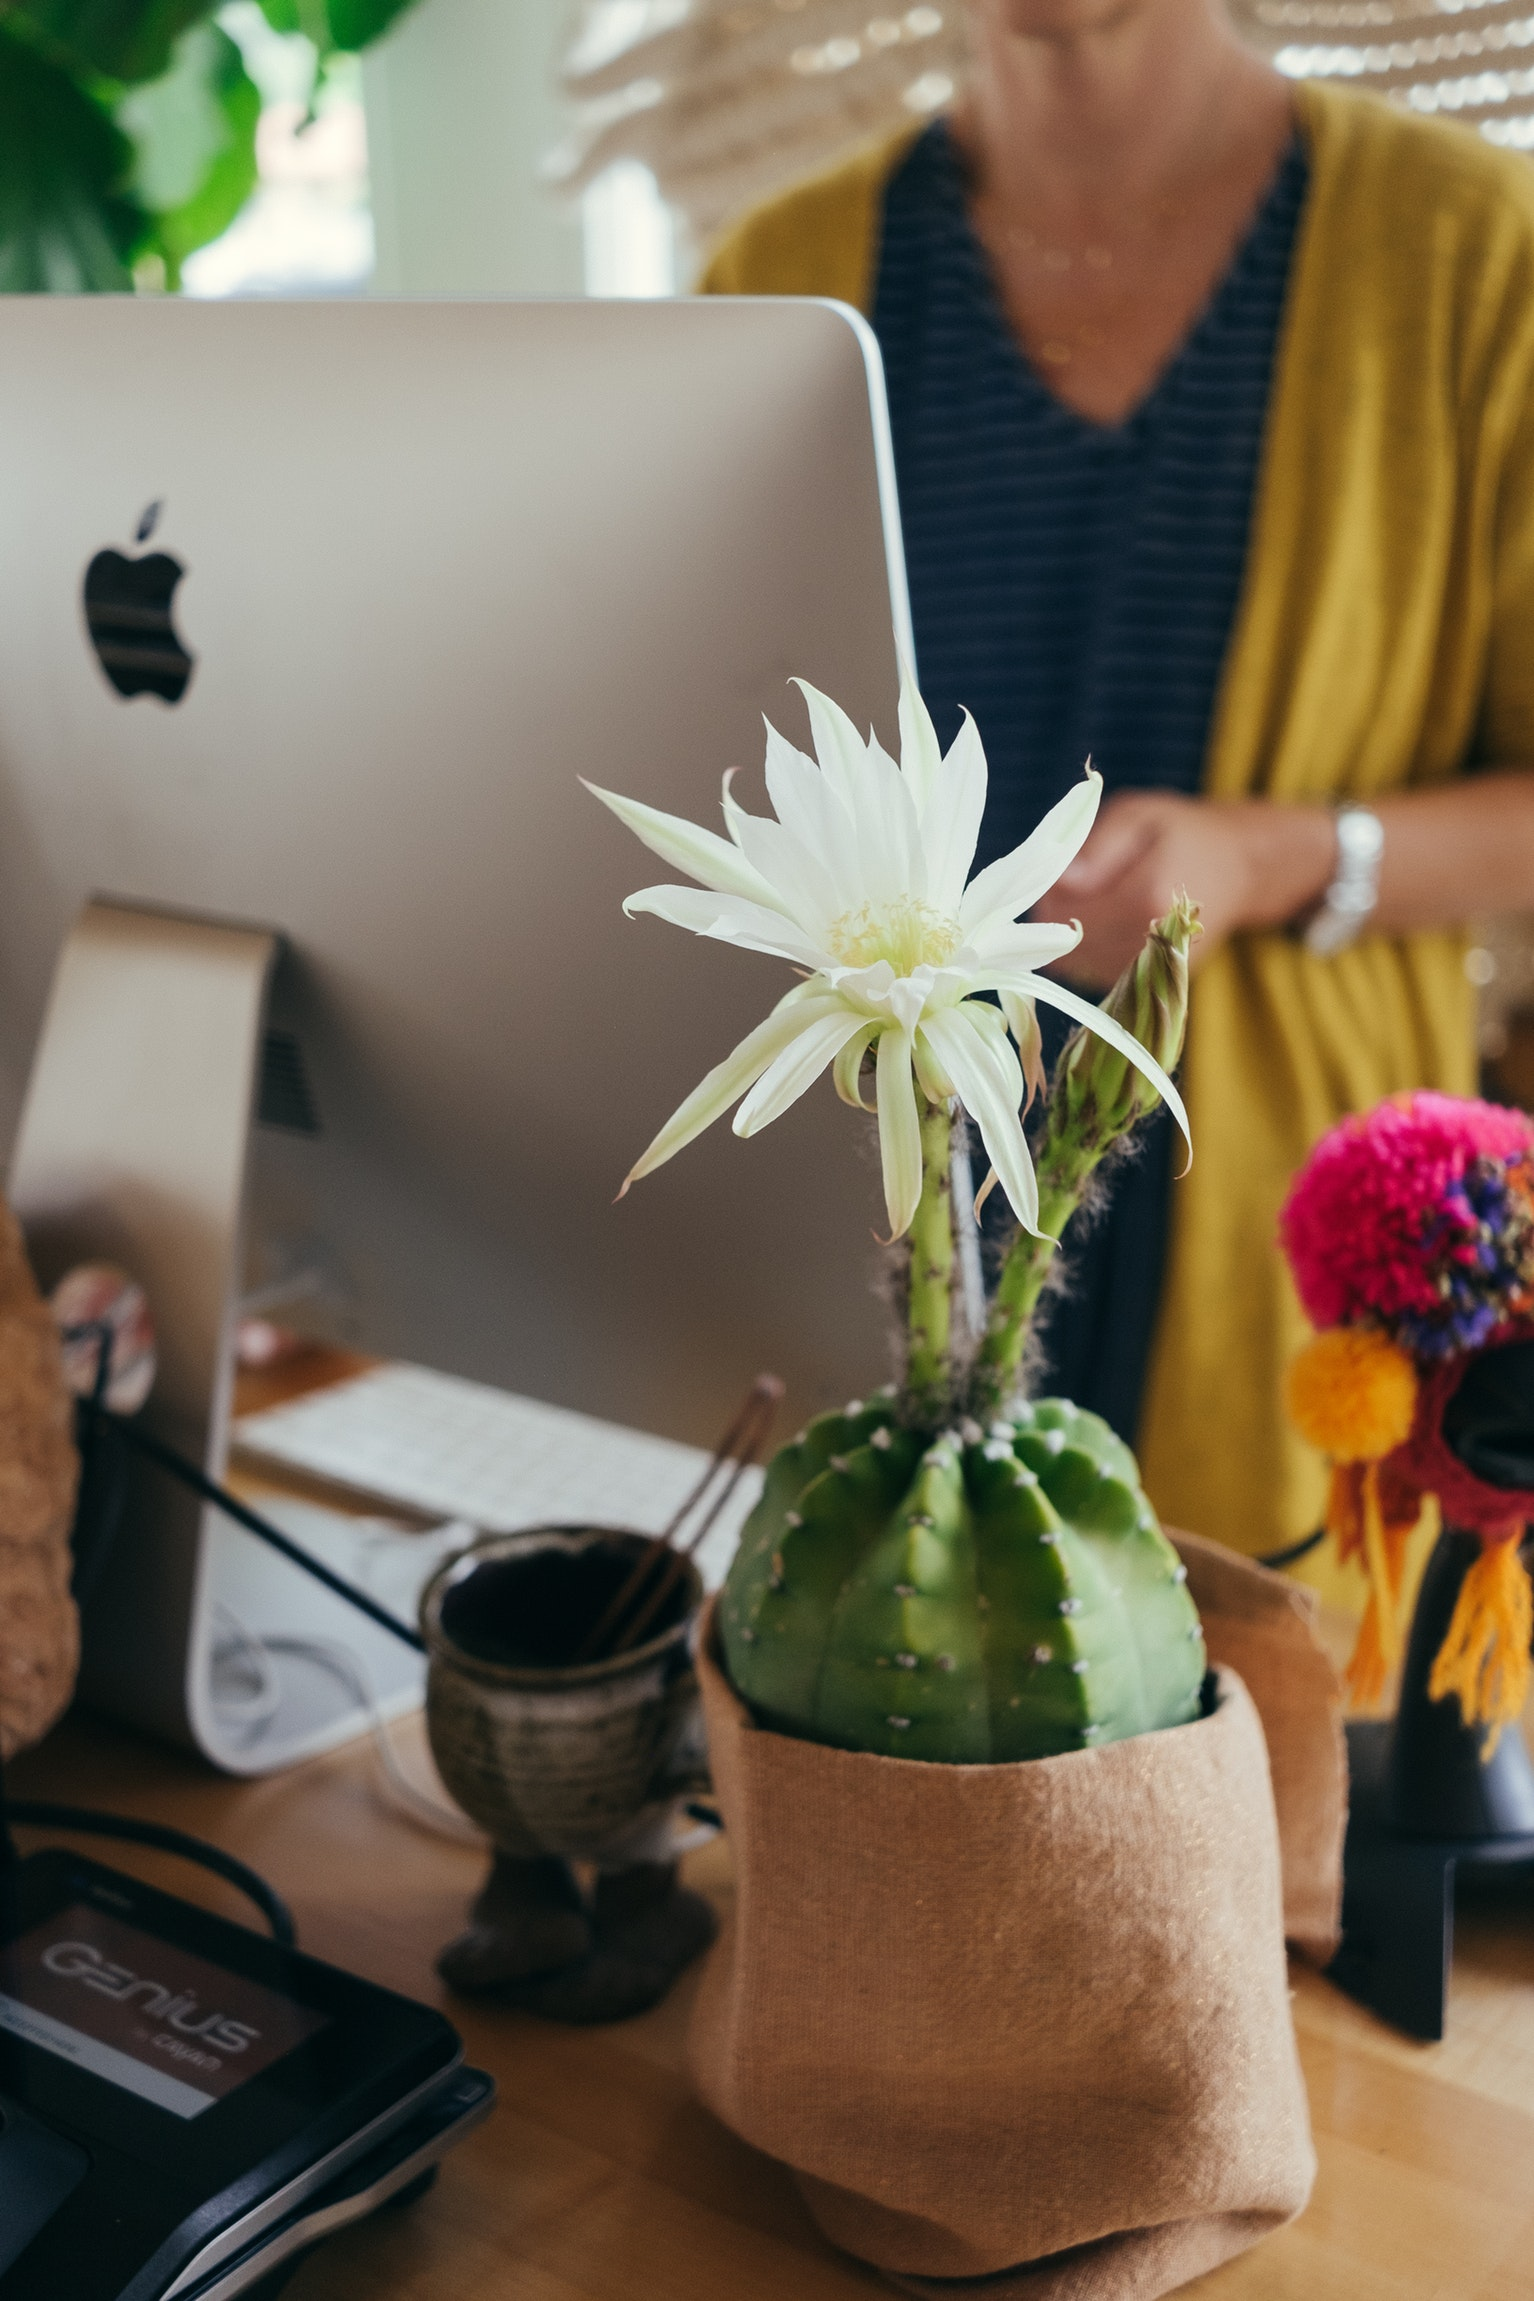 How to Define Your Passion and Discover Your Purpose